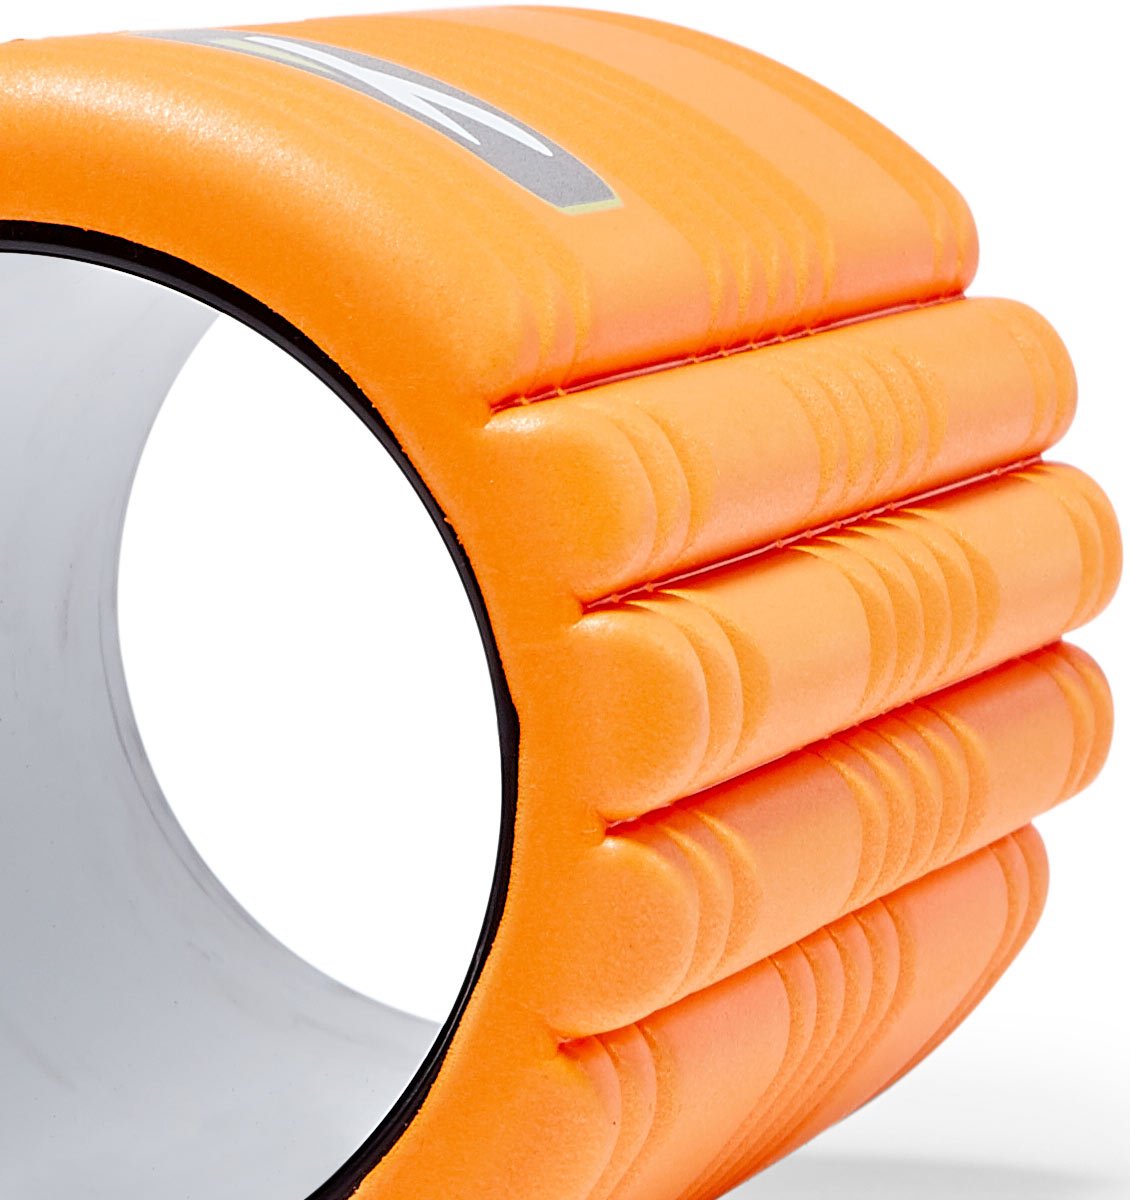 TPT3GRDOWS00000 TriggerPoint The Grid 1.0 Foam Roller Orange - 60 Degree Angle - Close Up